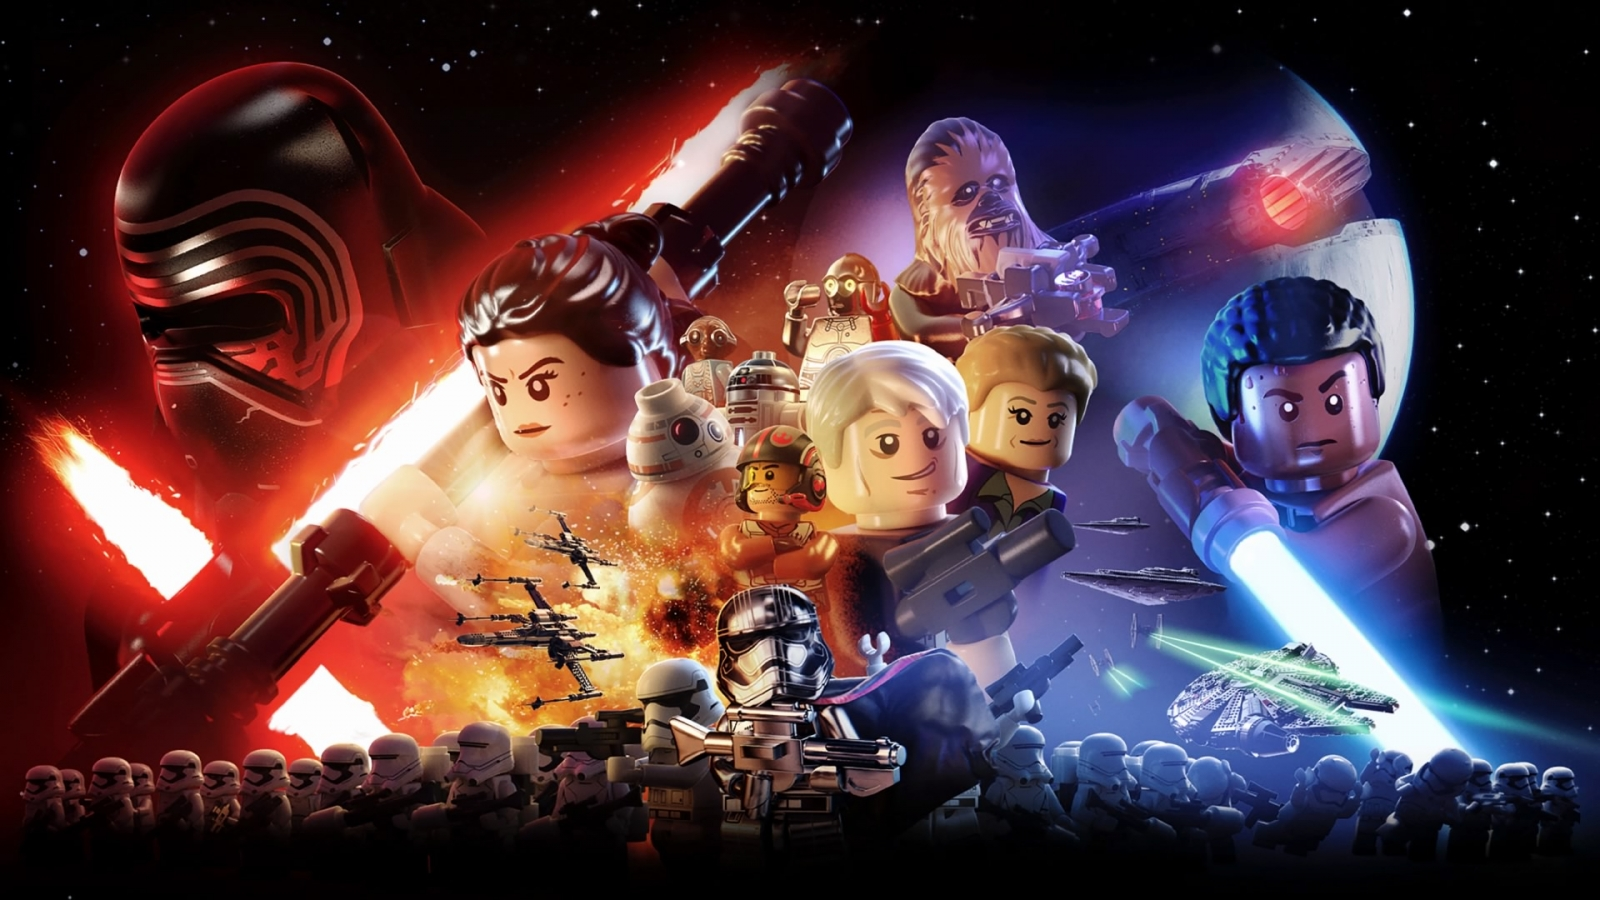 Lego Star Wars Force Awakens main